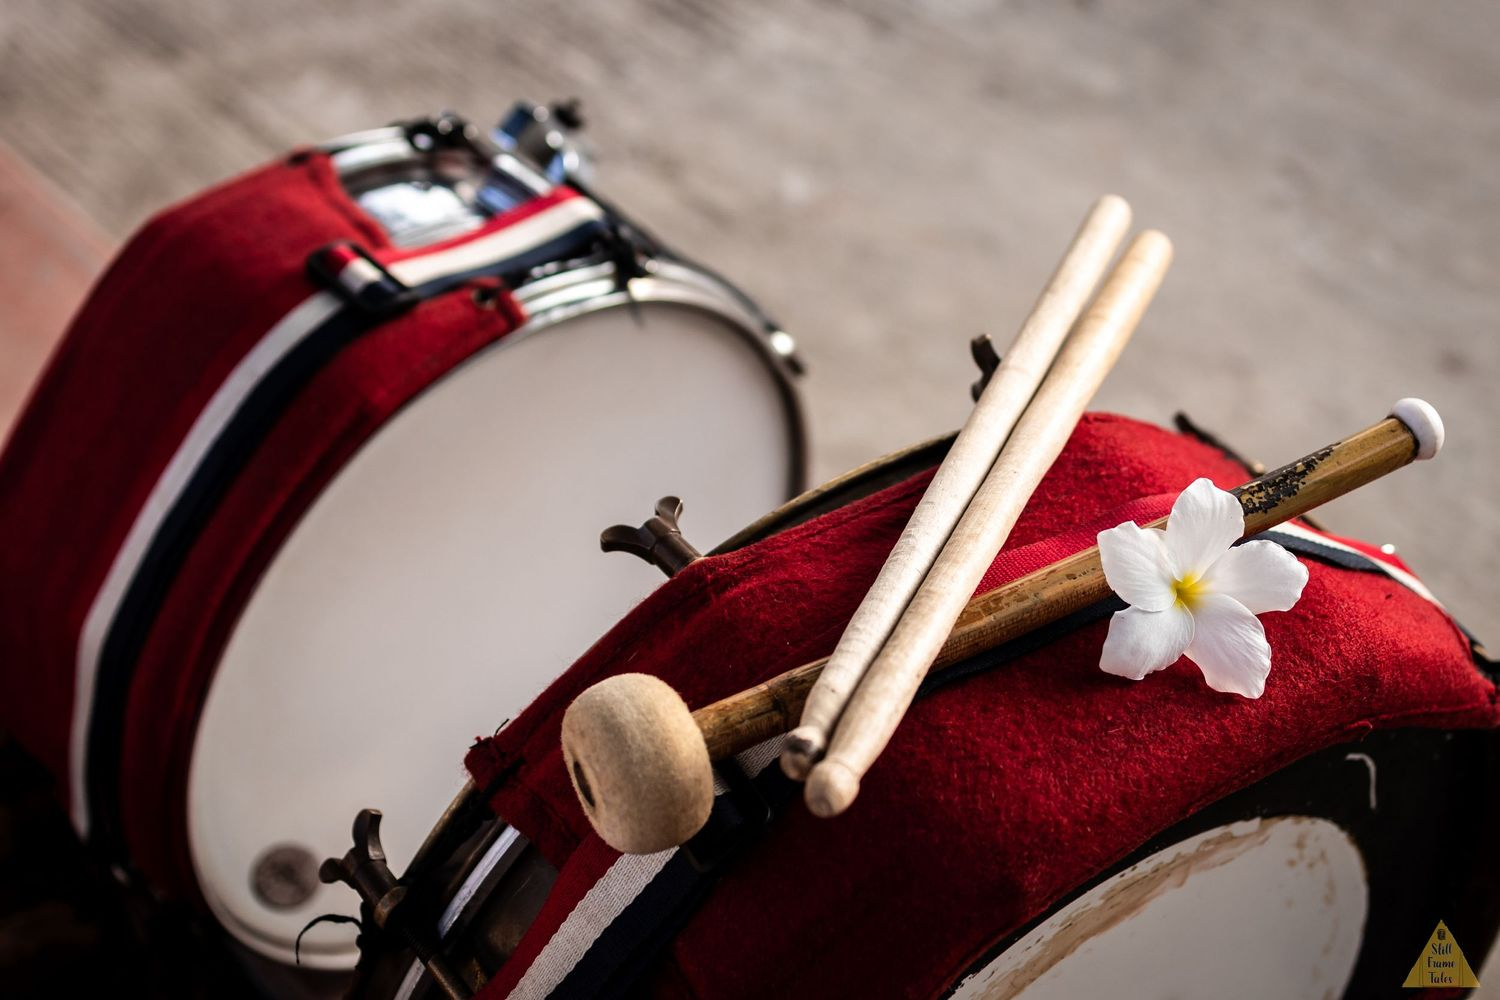 Drum stick on drums with white flower at a destination wedding